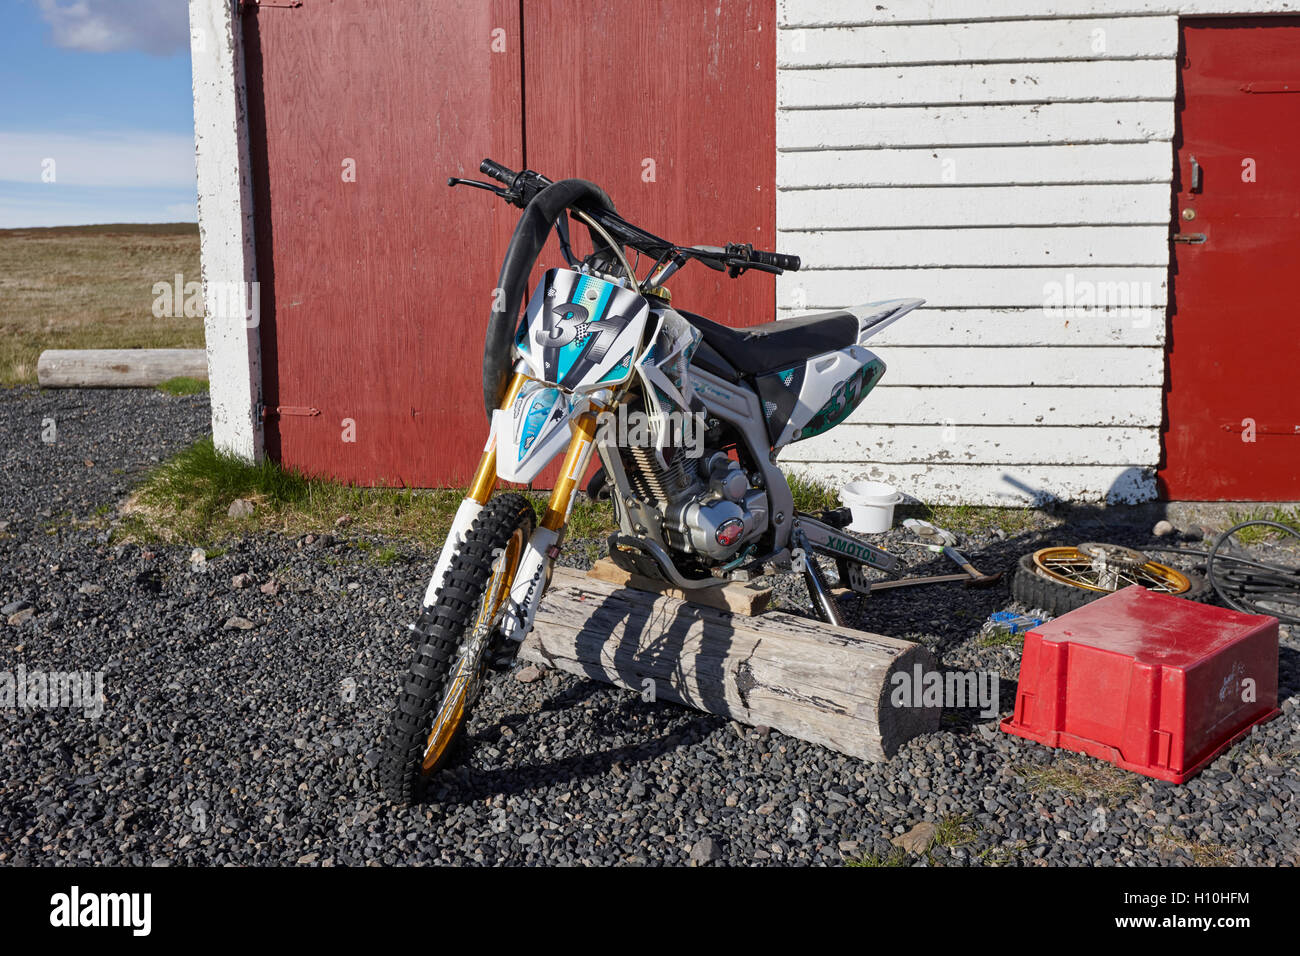 repairing a puncture on a chinese dirt trail bike used by a farmer to herd sheep in Iceland - Stock Image